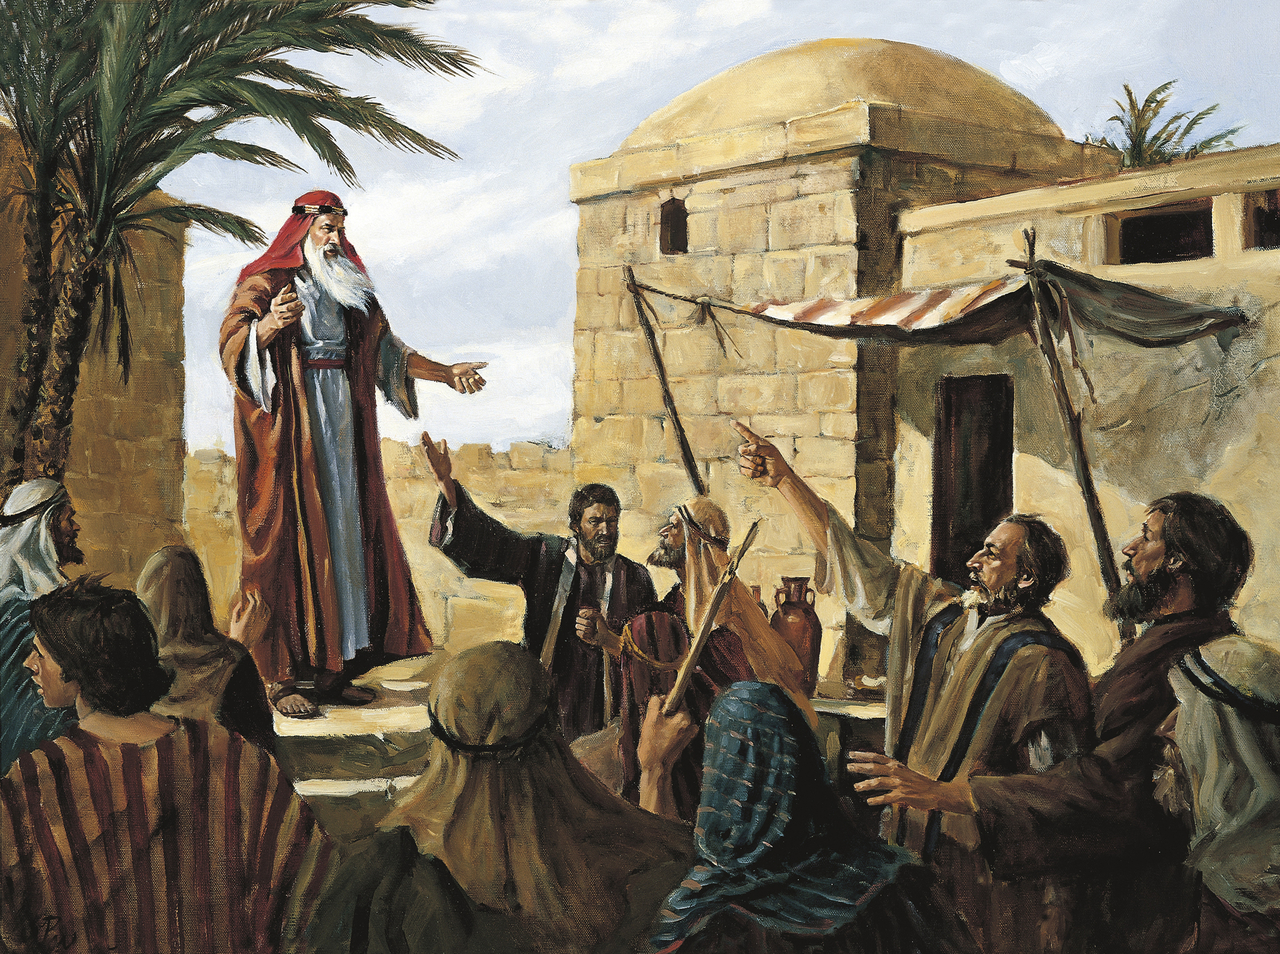 The Book of Mormon prophet Lehi teaches the people of Jerusalem they must repent or be destroyed by Babylon